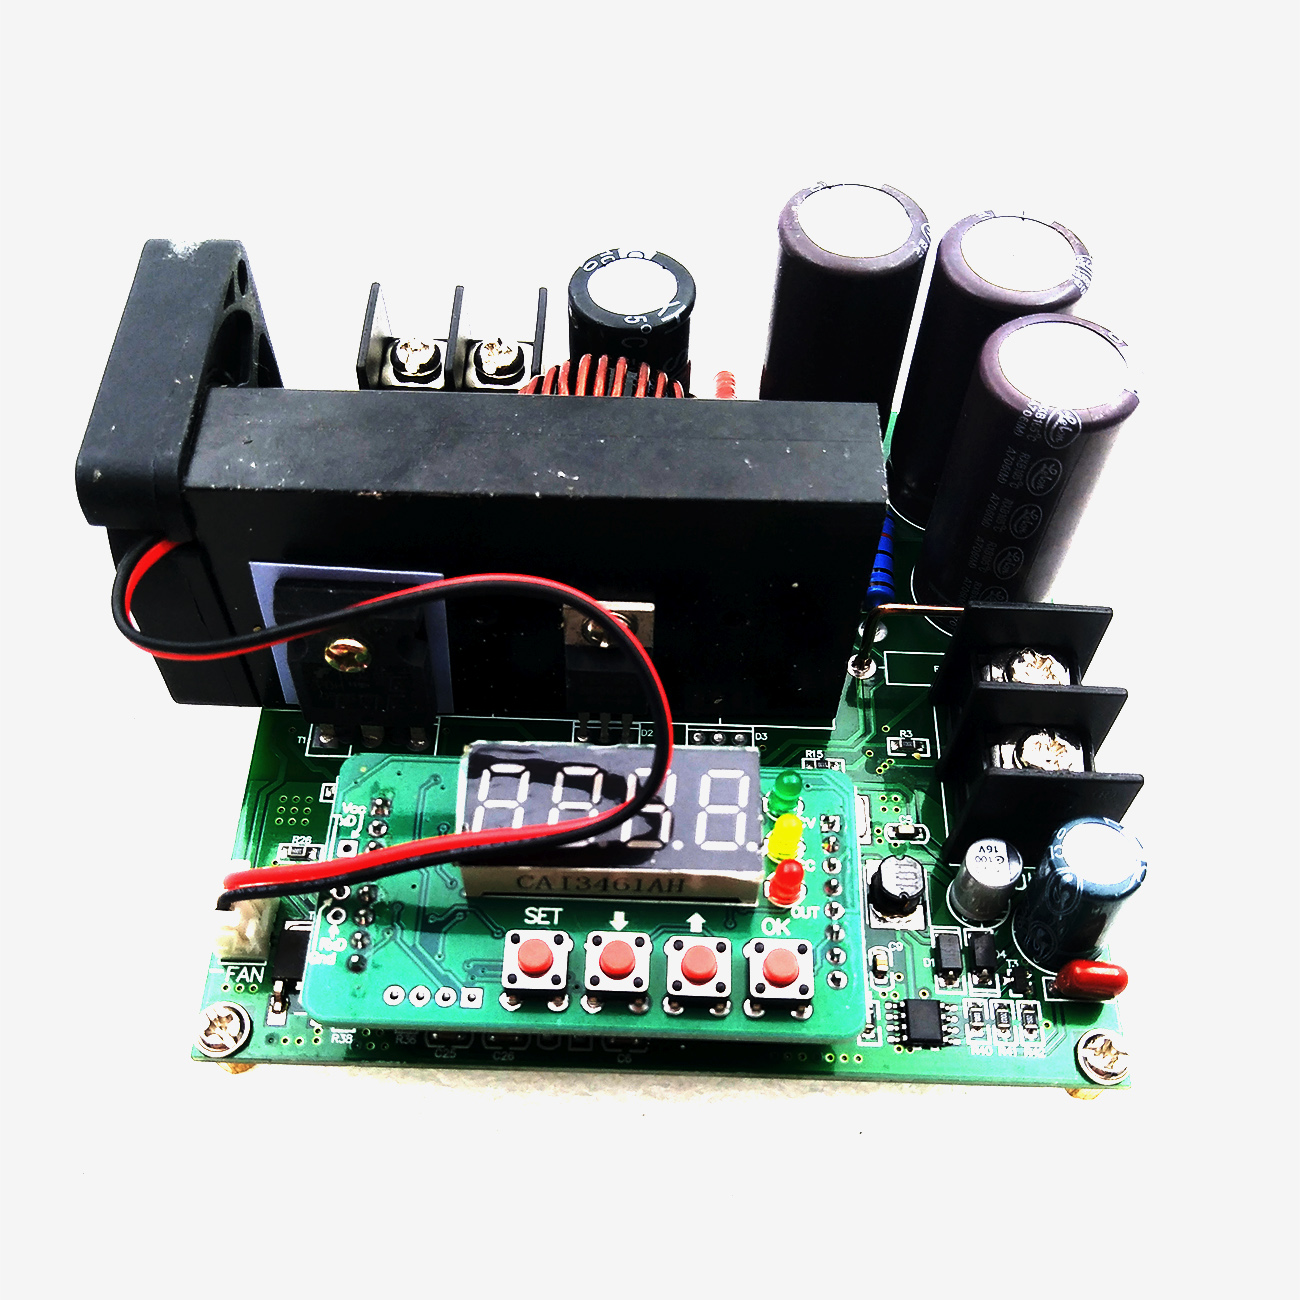 5pcs/lot B900W adjustable impulse module Current Transformer Voltage Regulator Module Input Constant 8 60v to 10 120v 900w-in Integrated Circuits from Electronic Components & Supplies